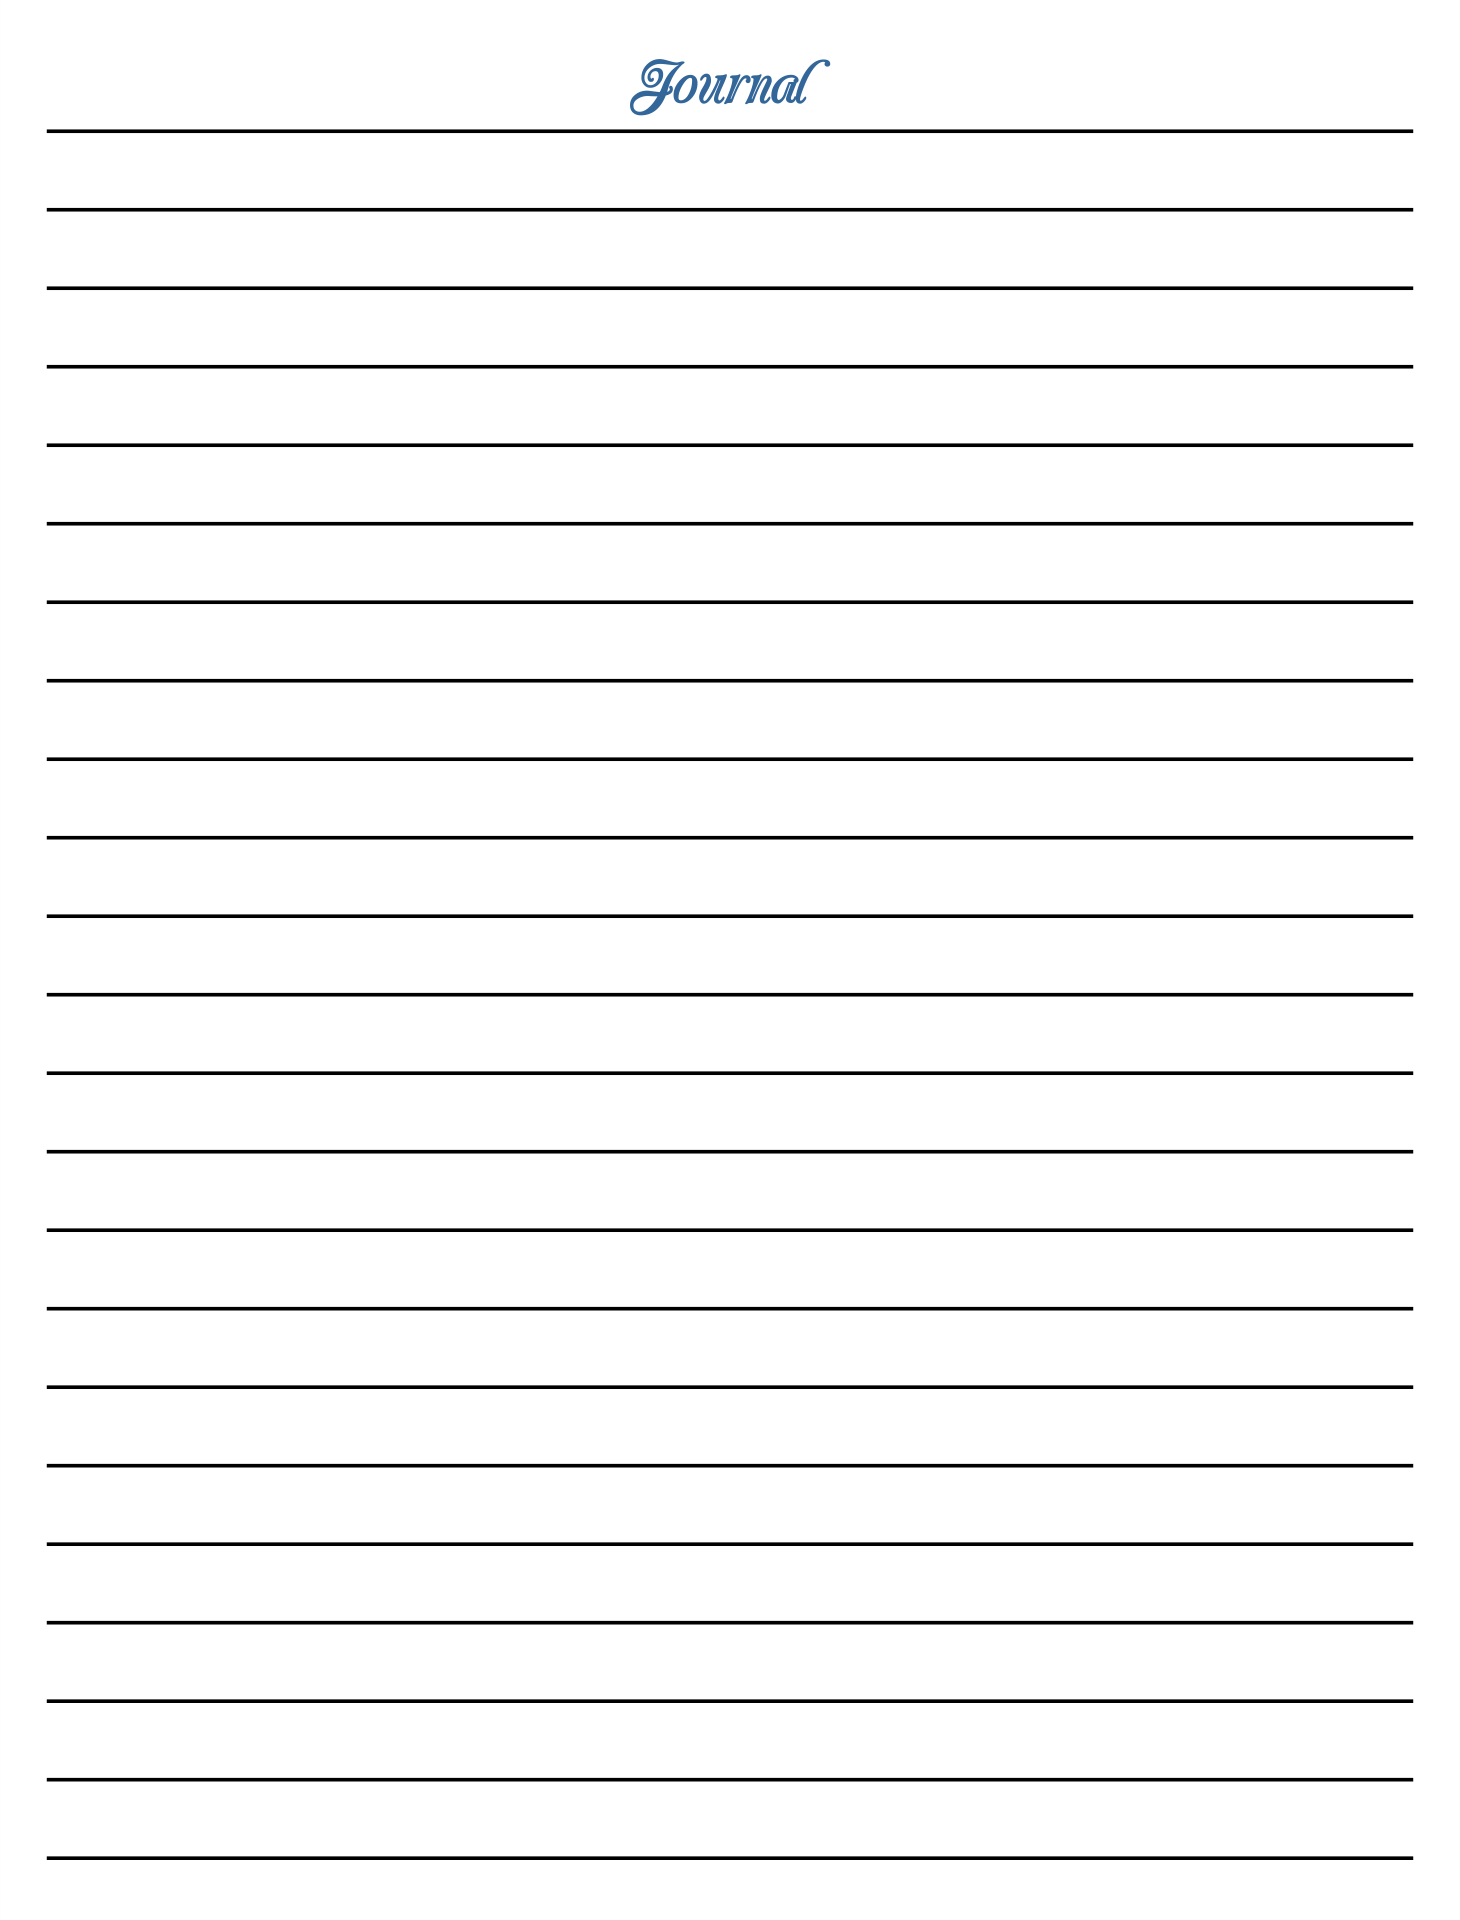 Free Printable Lined Journal Paper